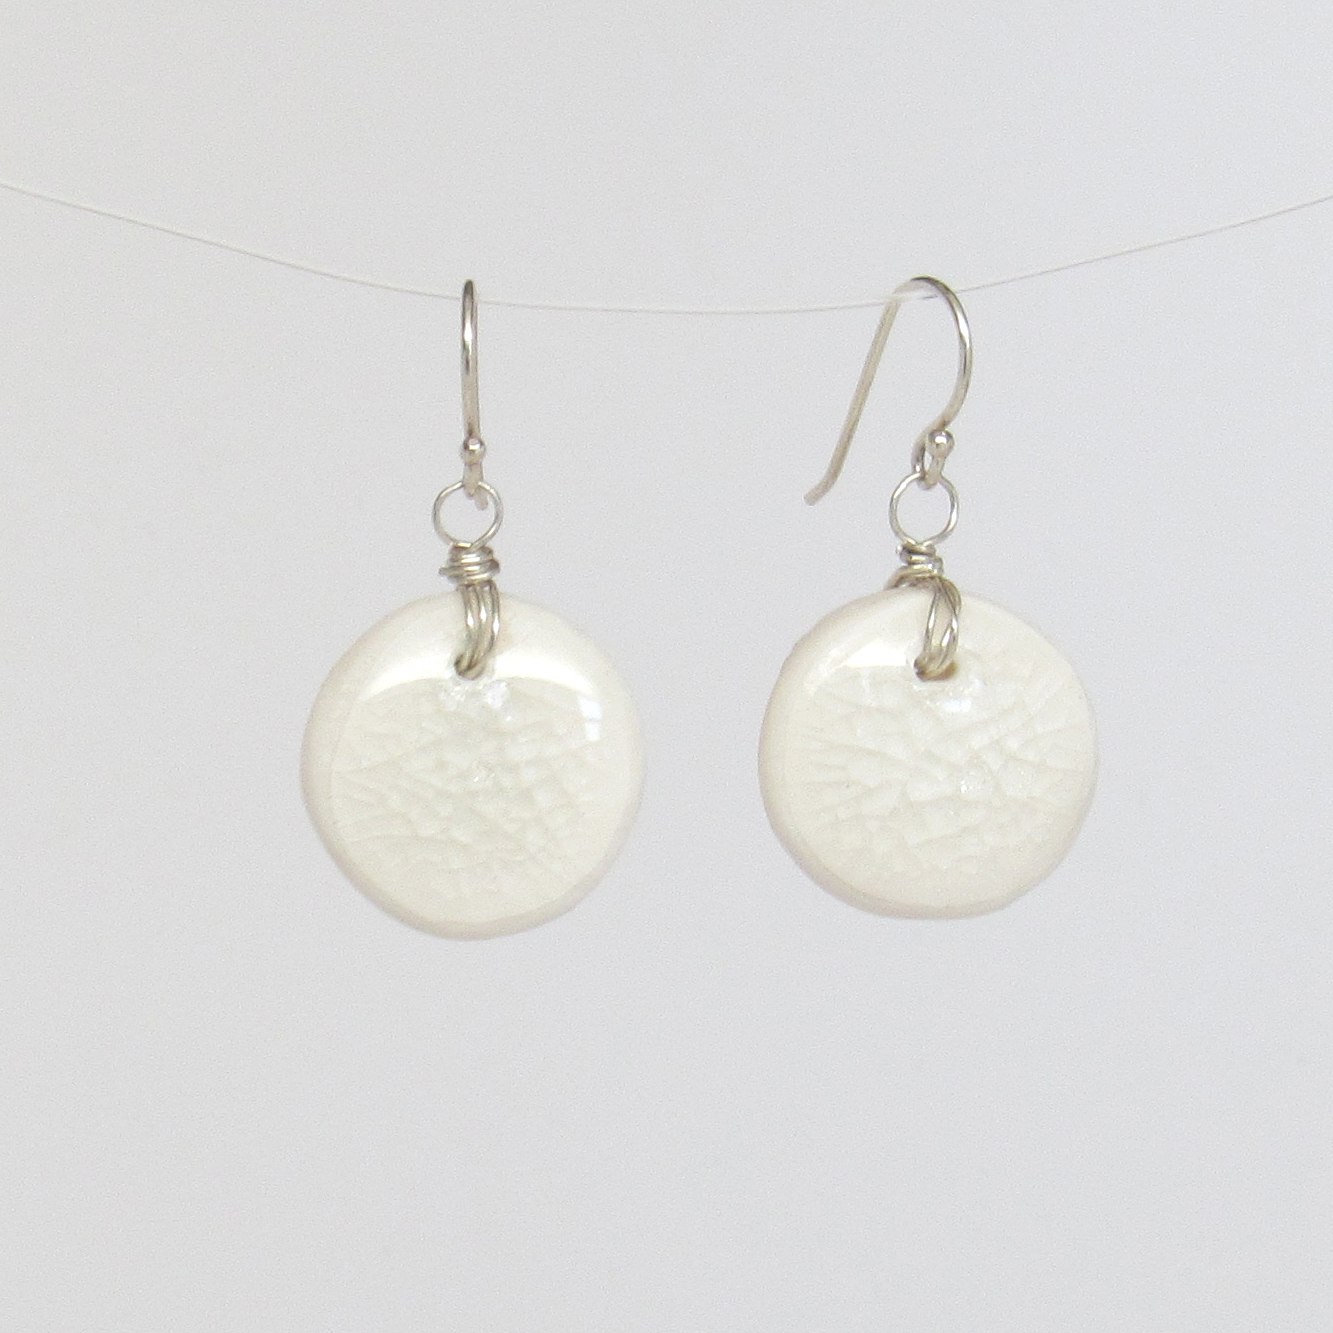 Coastal Chic Round White Earrings